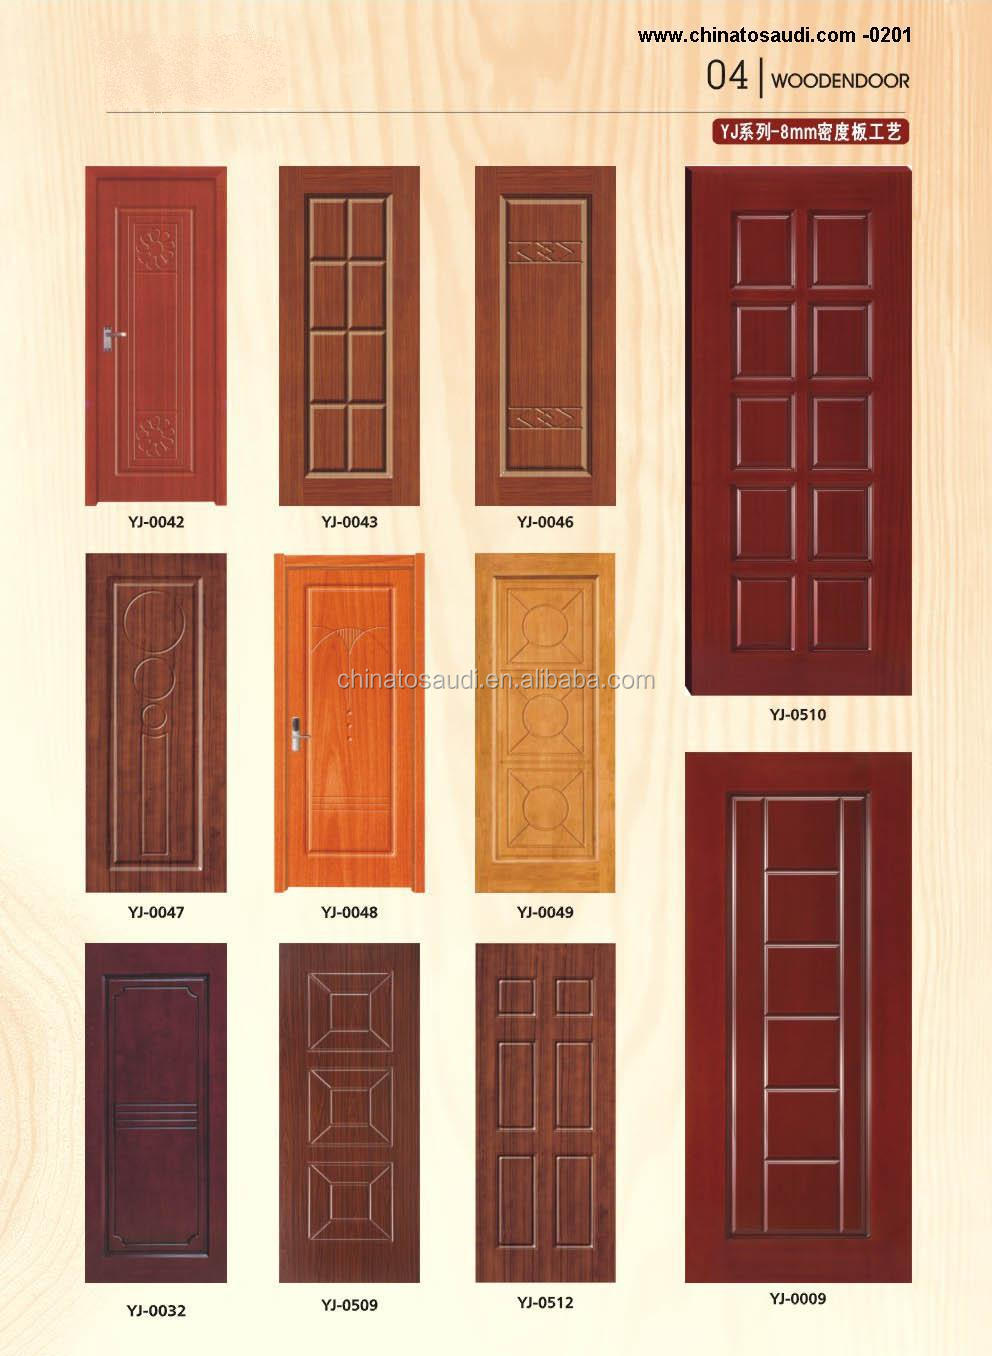 Villa main door solid wood security villa double leaf door design - Wooden Main Door Design Wood Door On Sale